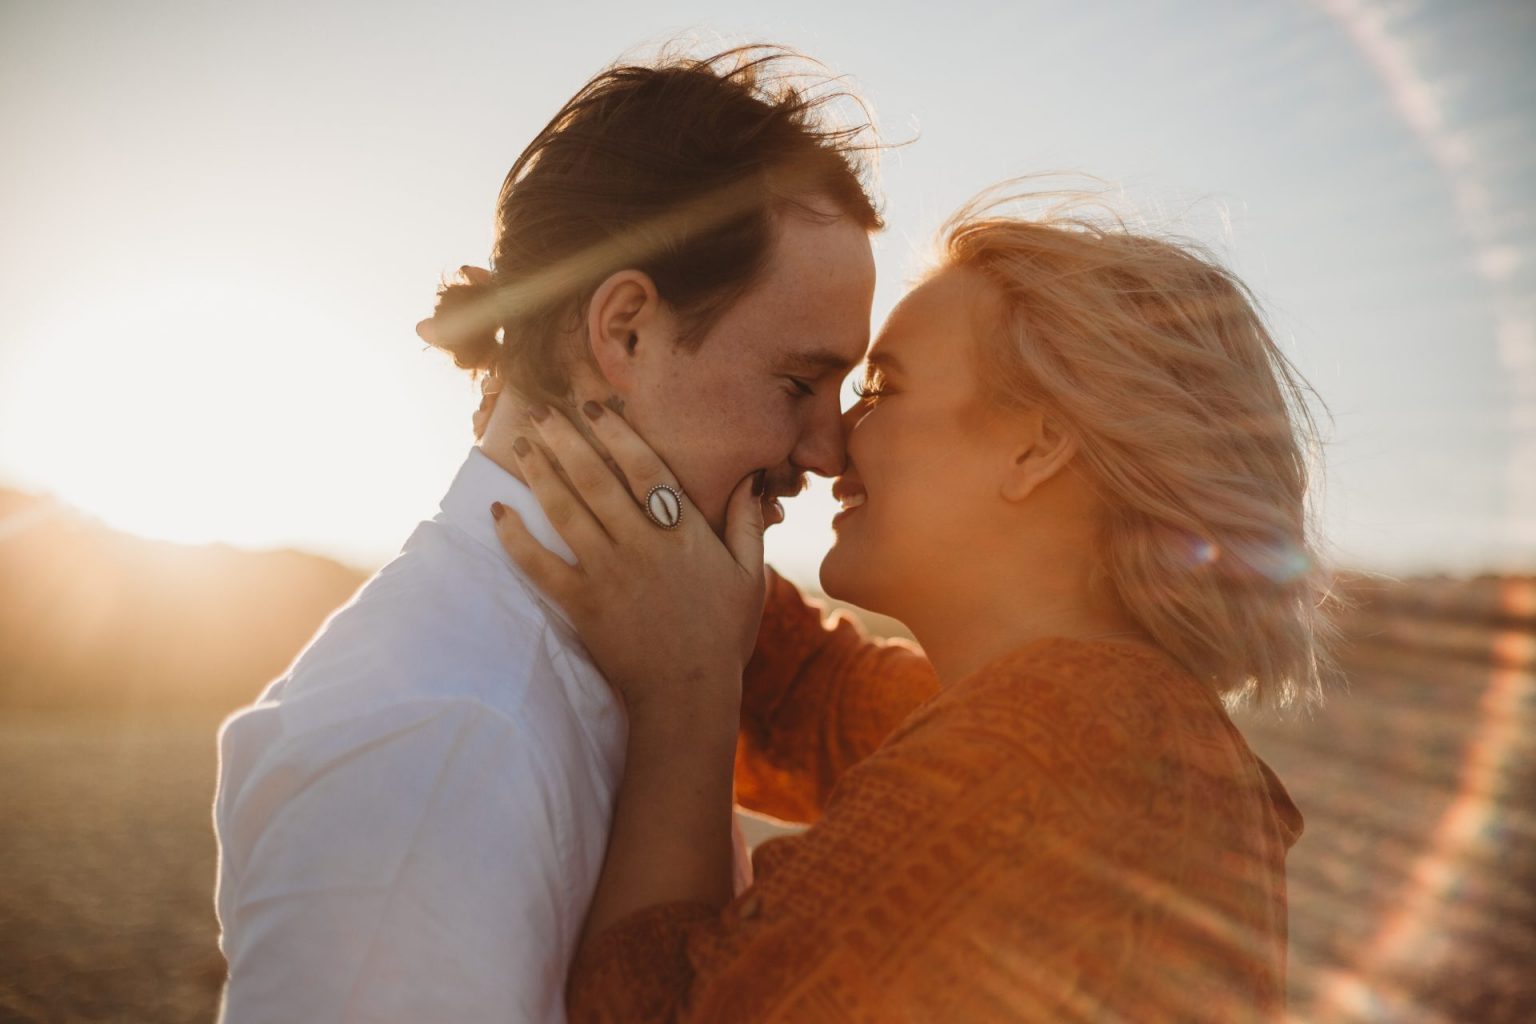 Young couple in an embrace, woman with her hand on her boyfriend's cheek, surrounded by sun flare at sunset